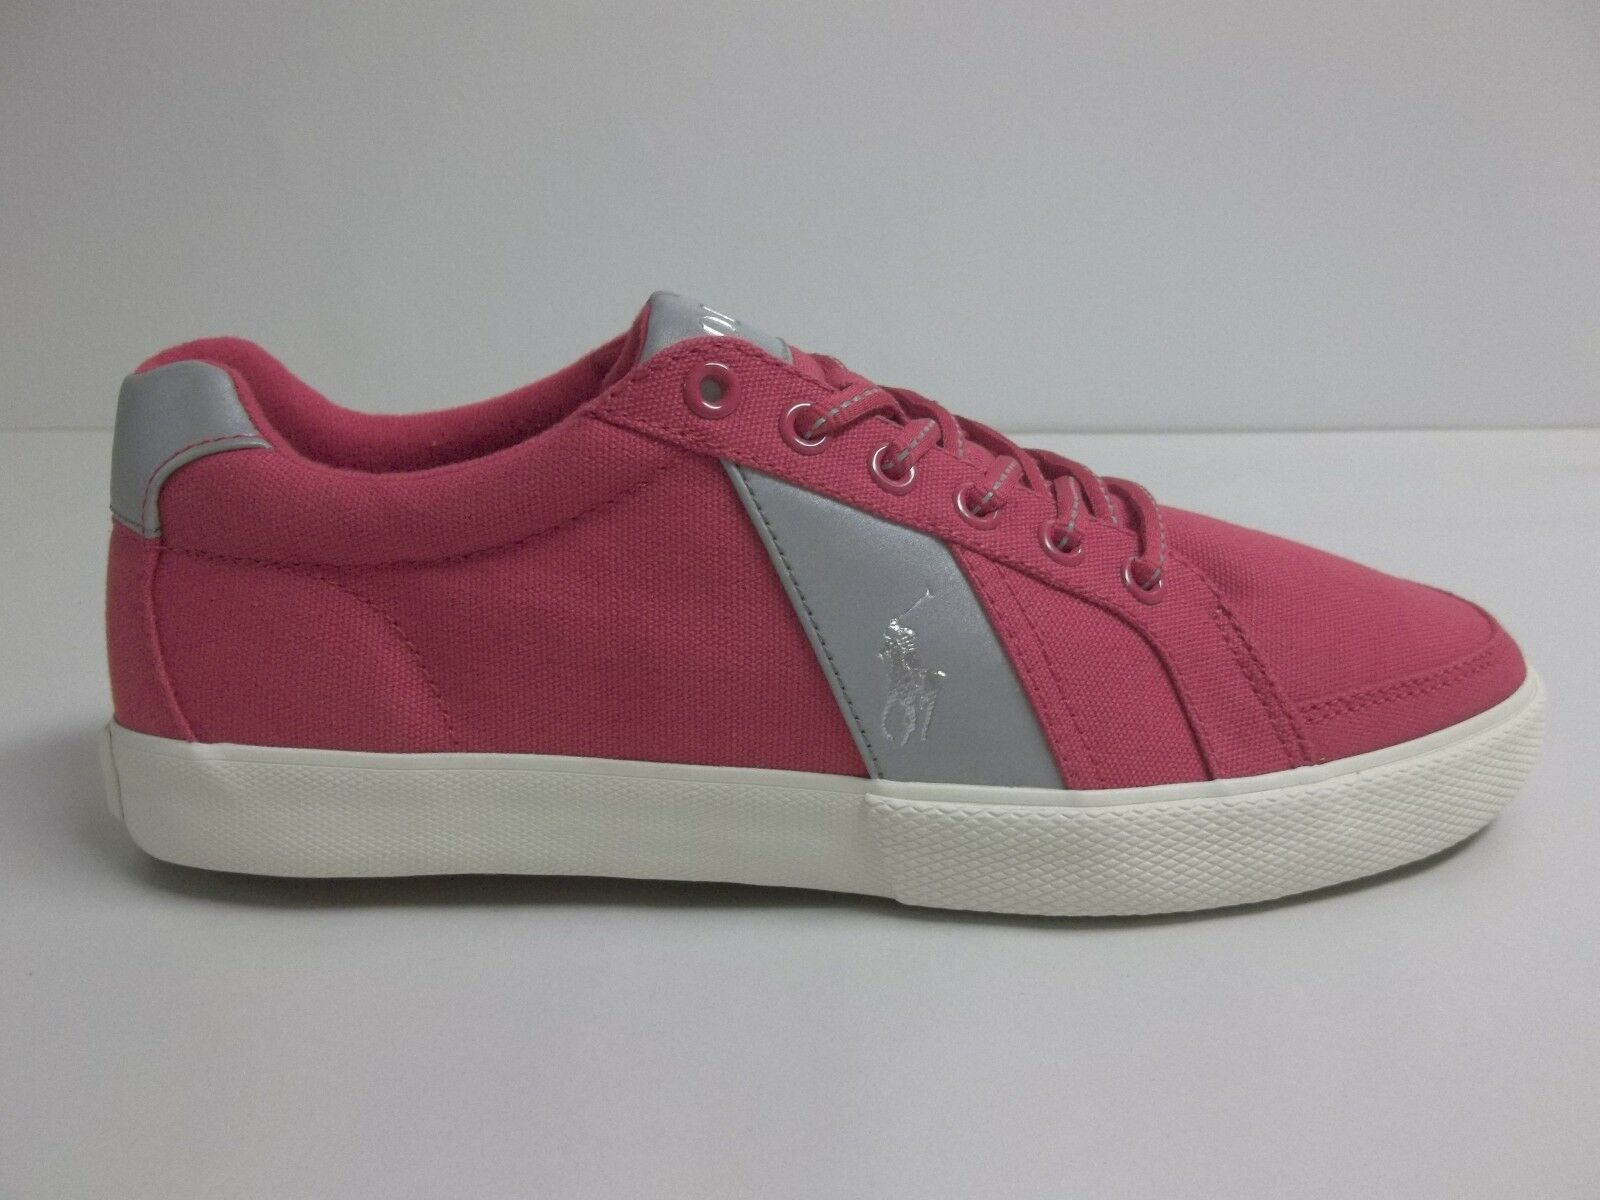 Polo Ralph Lauren Size 10.5 M HUGH Red Canvas Fashion Sneakers New Mens shoes